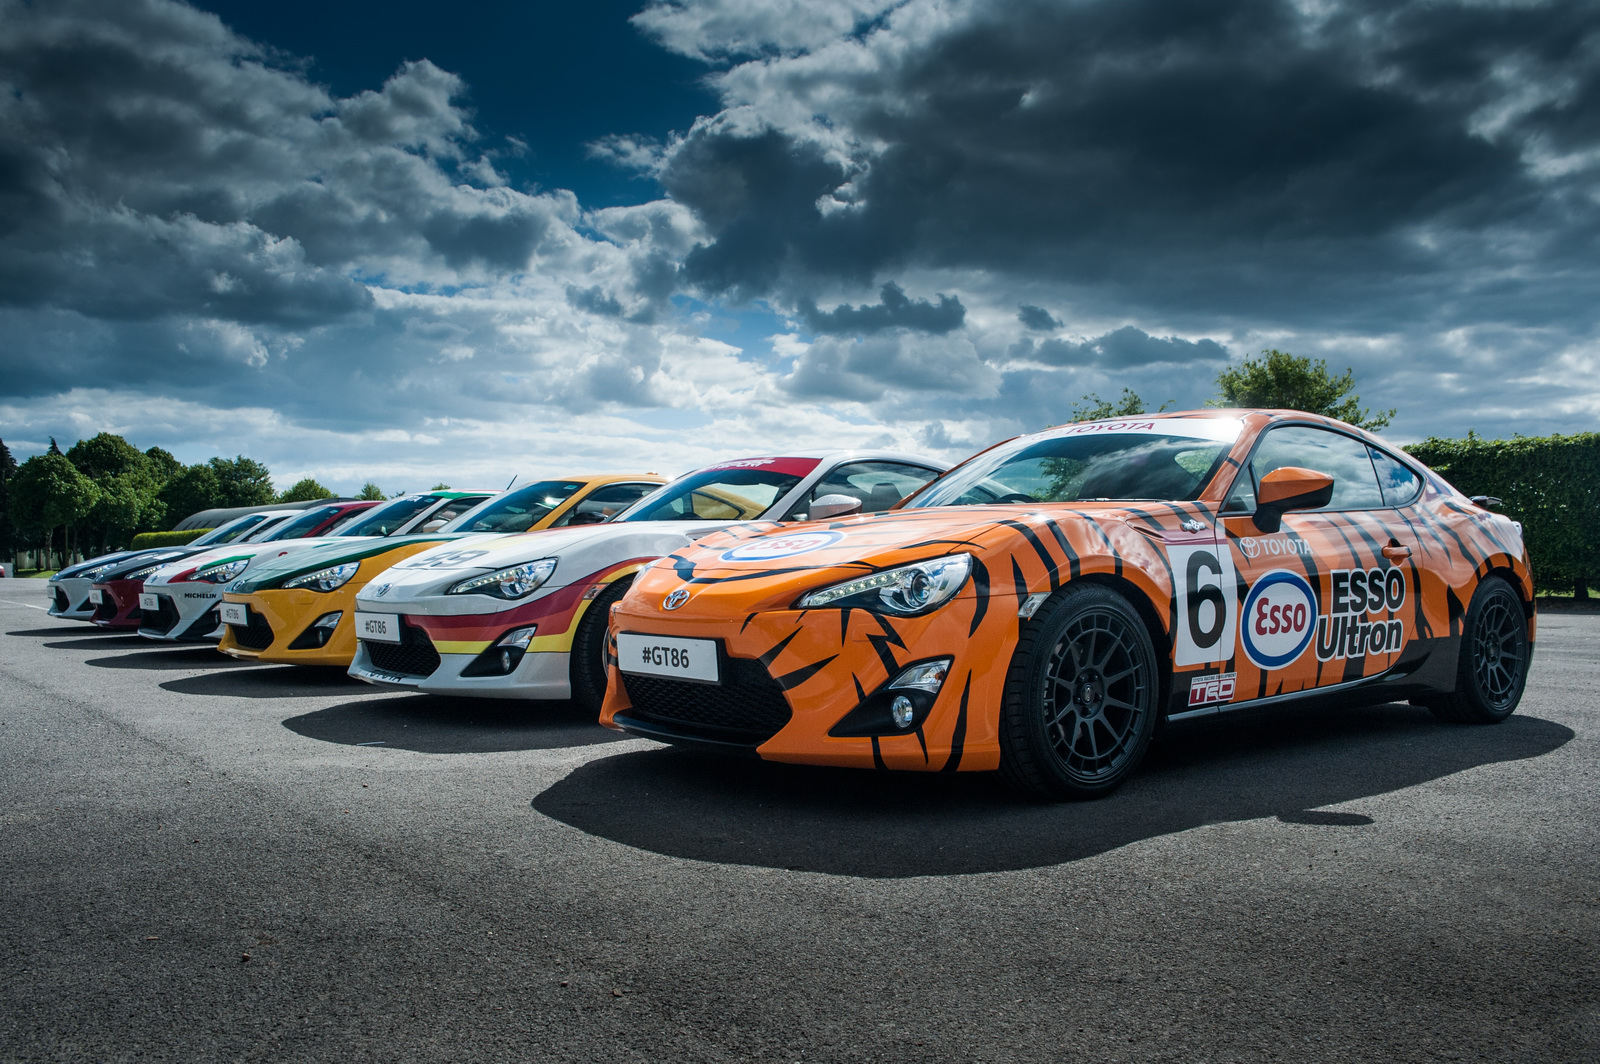 Des Toyota GT86 en robes d'époque - Photo n°3